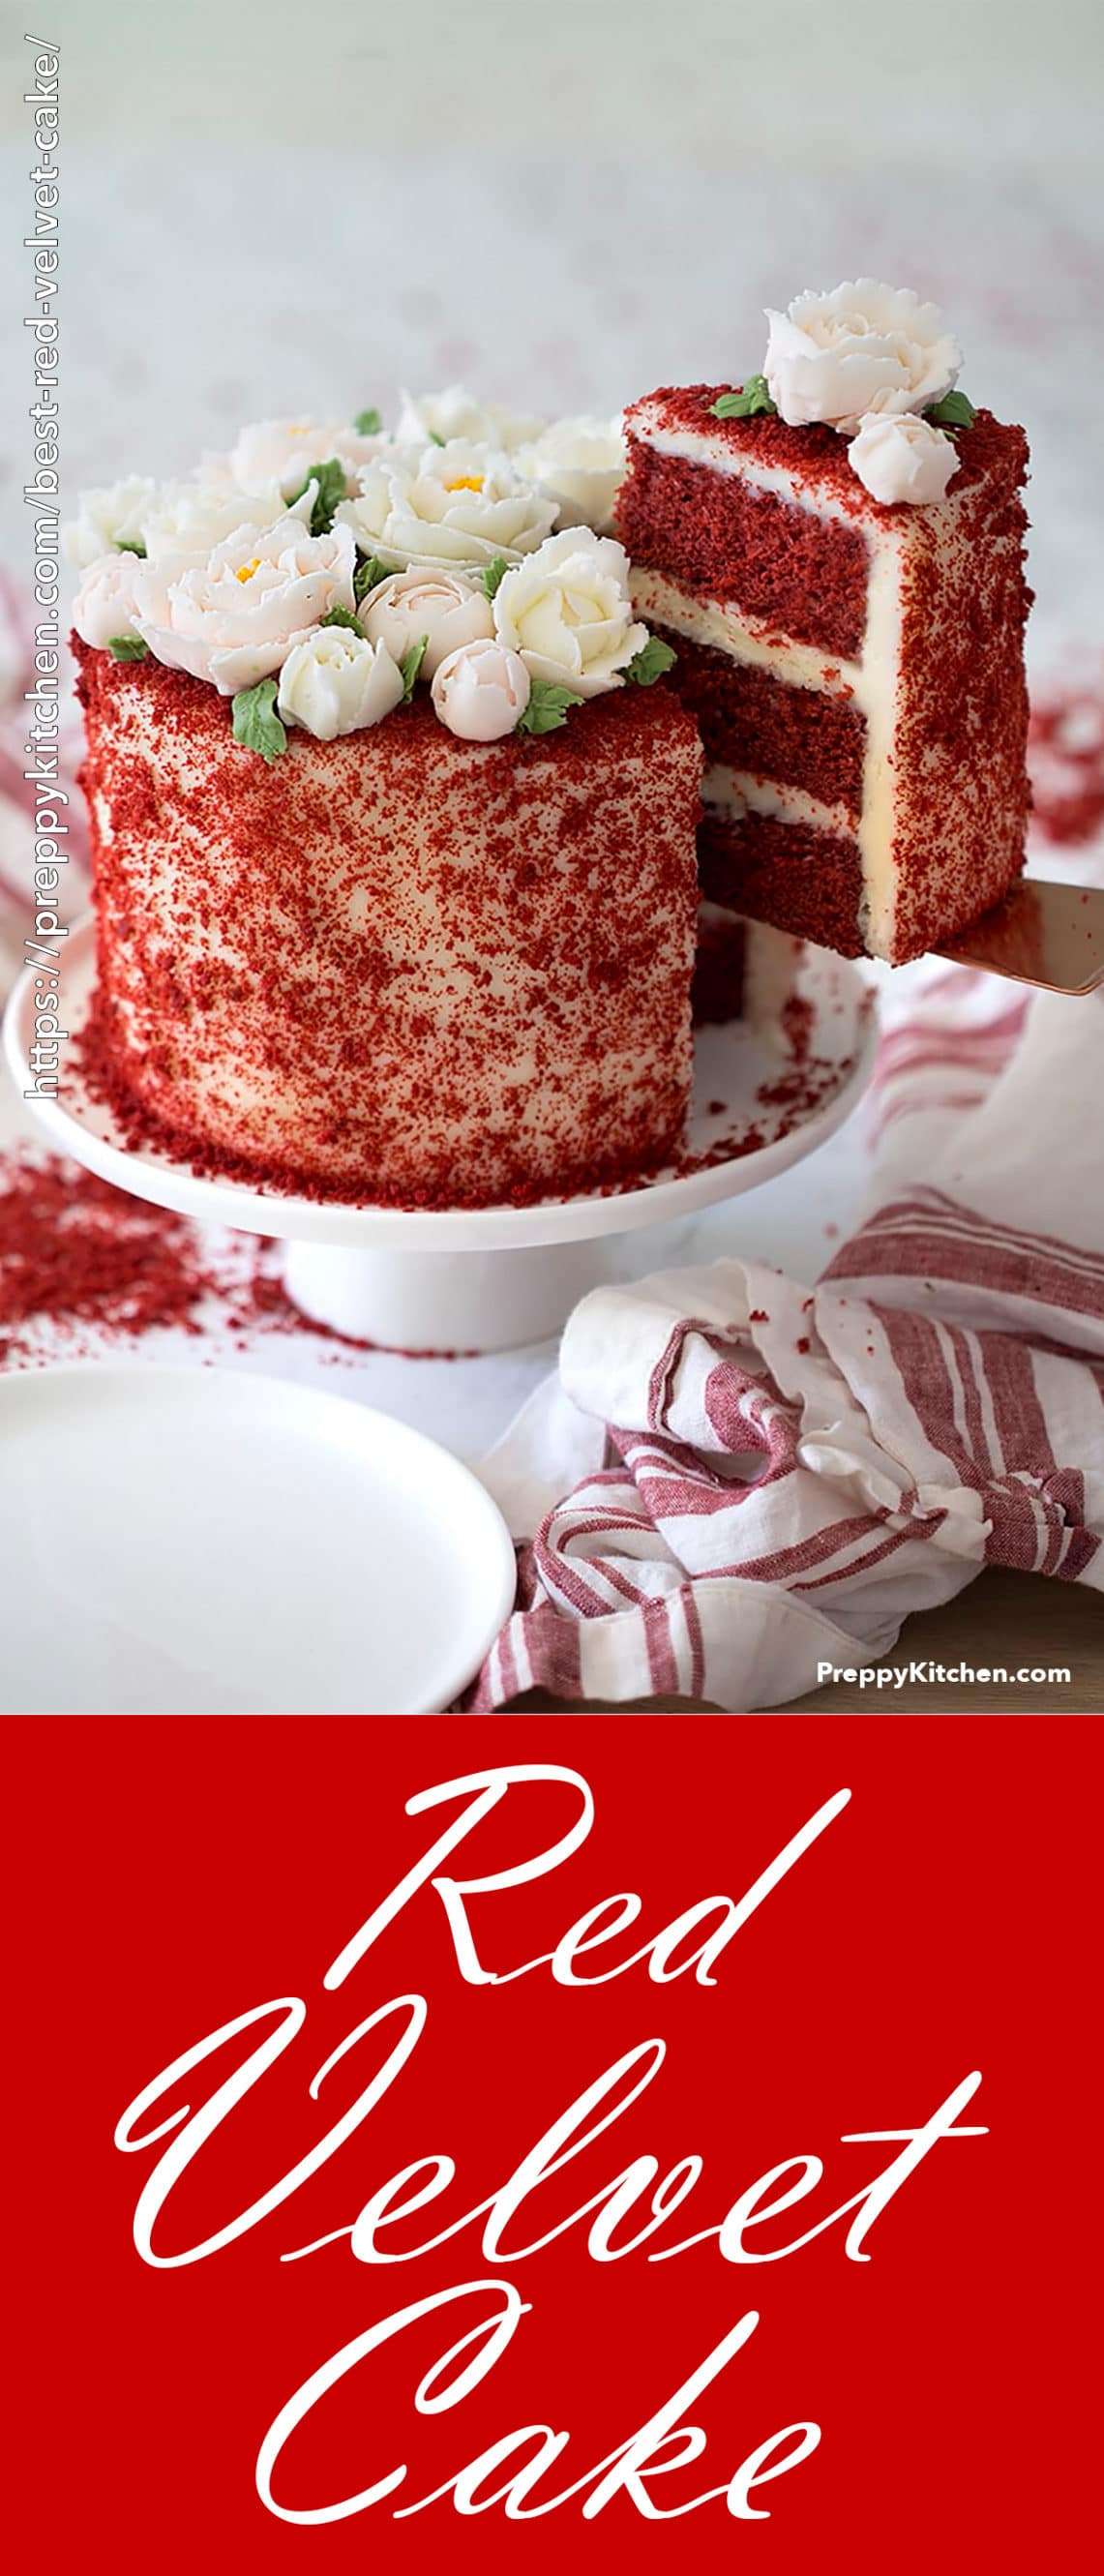 Red Birthday Cake Best Red Velvet Cake Preppy Kitchen